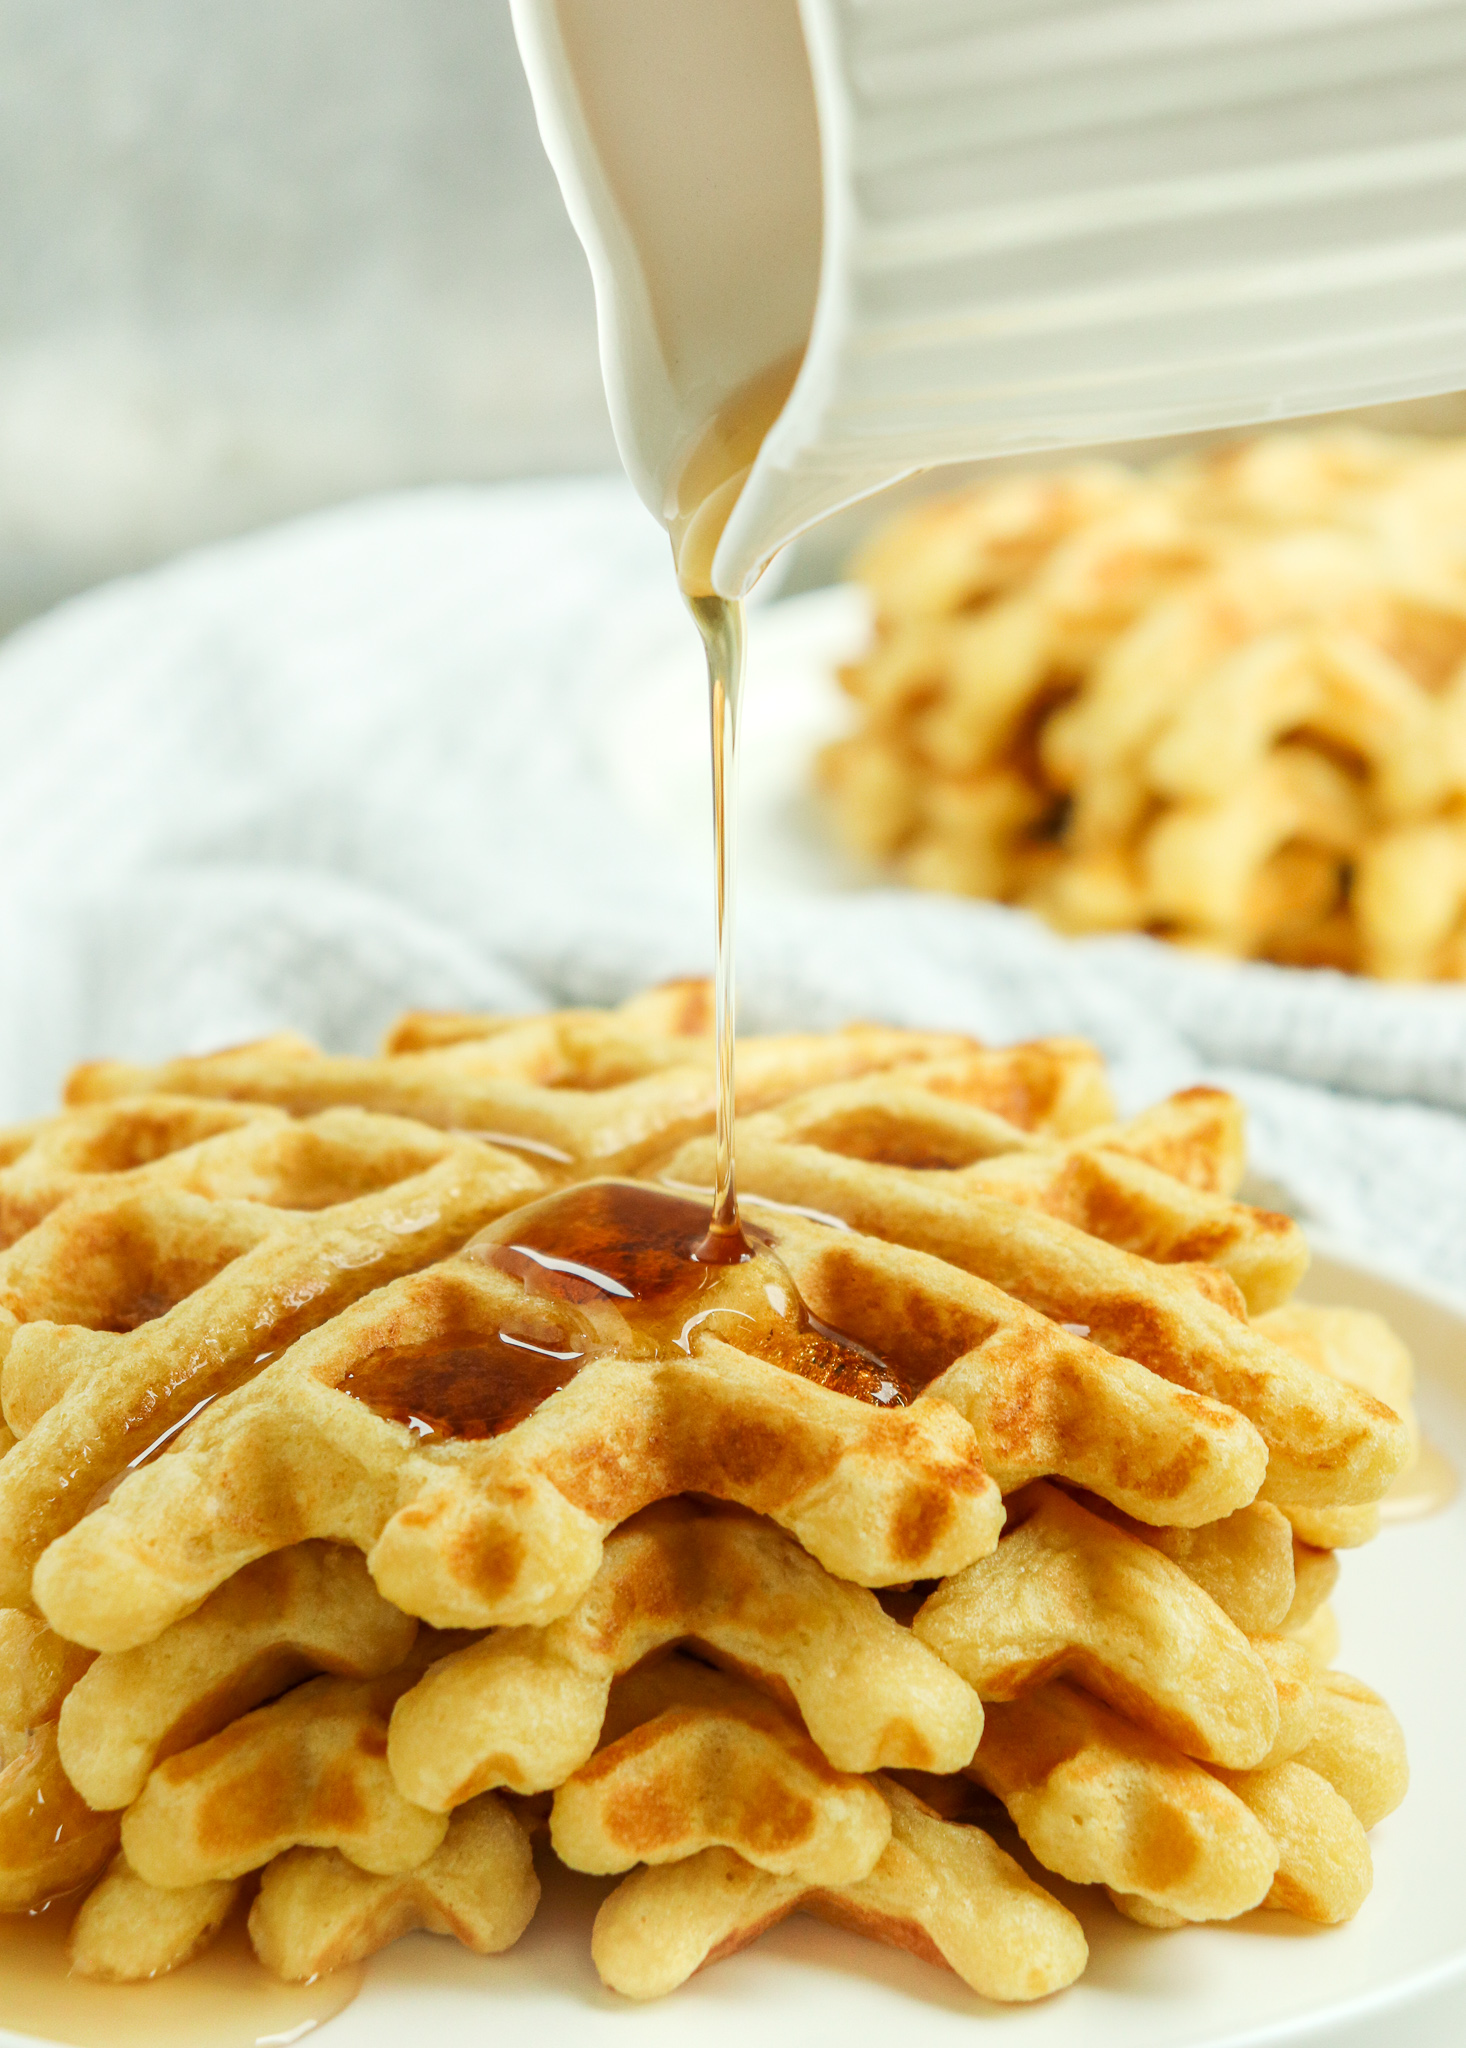 syrup being poured onto stack of Easy Homemade Waffles